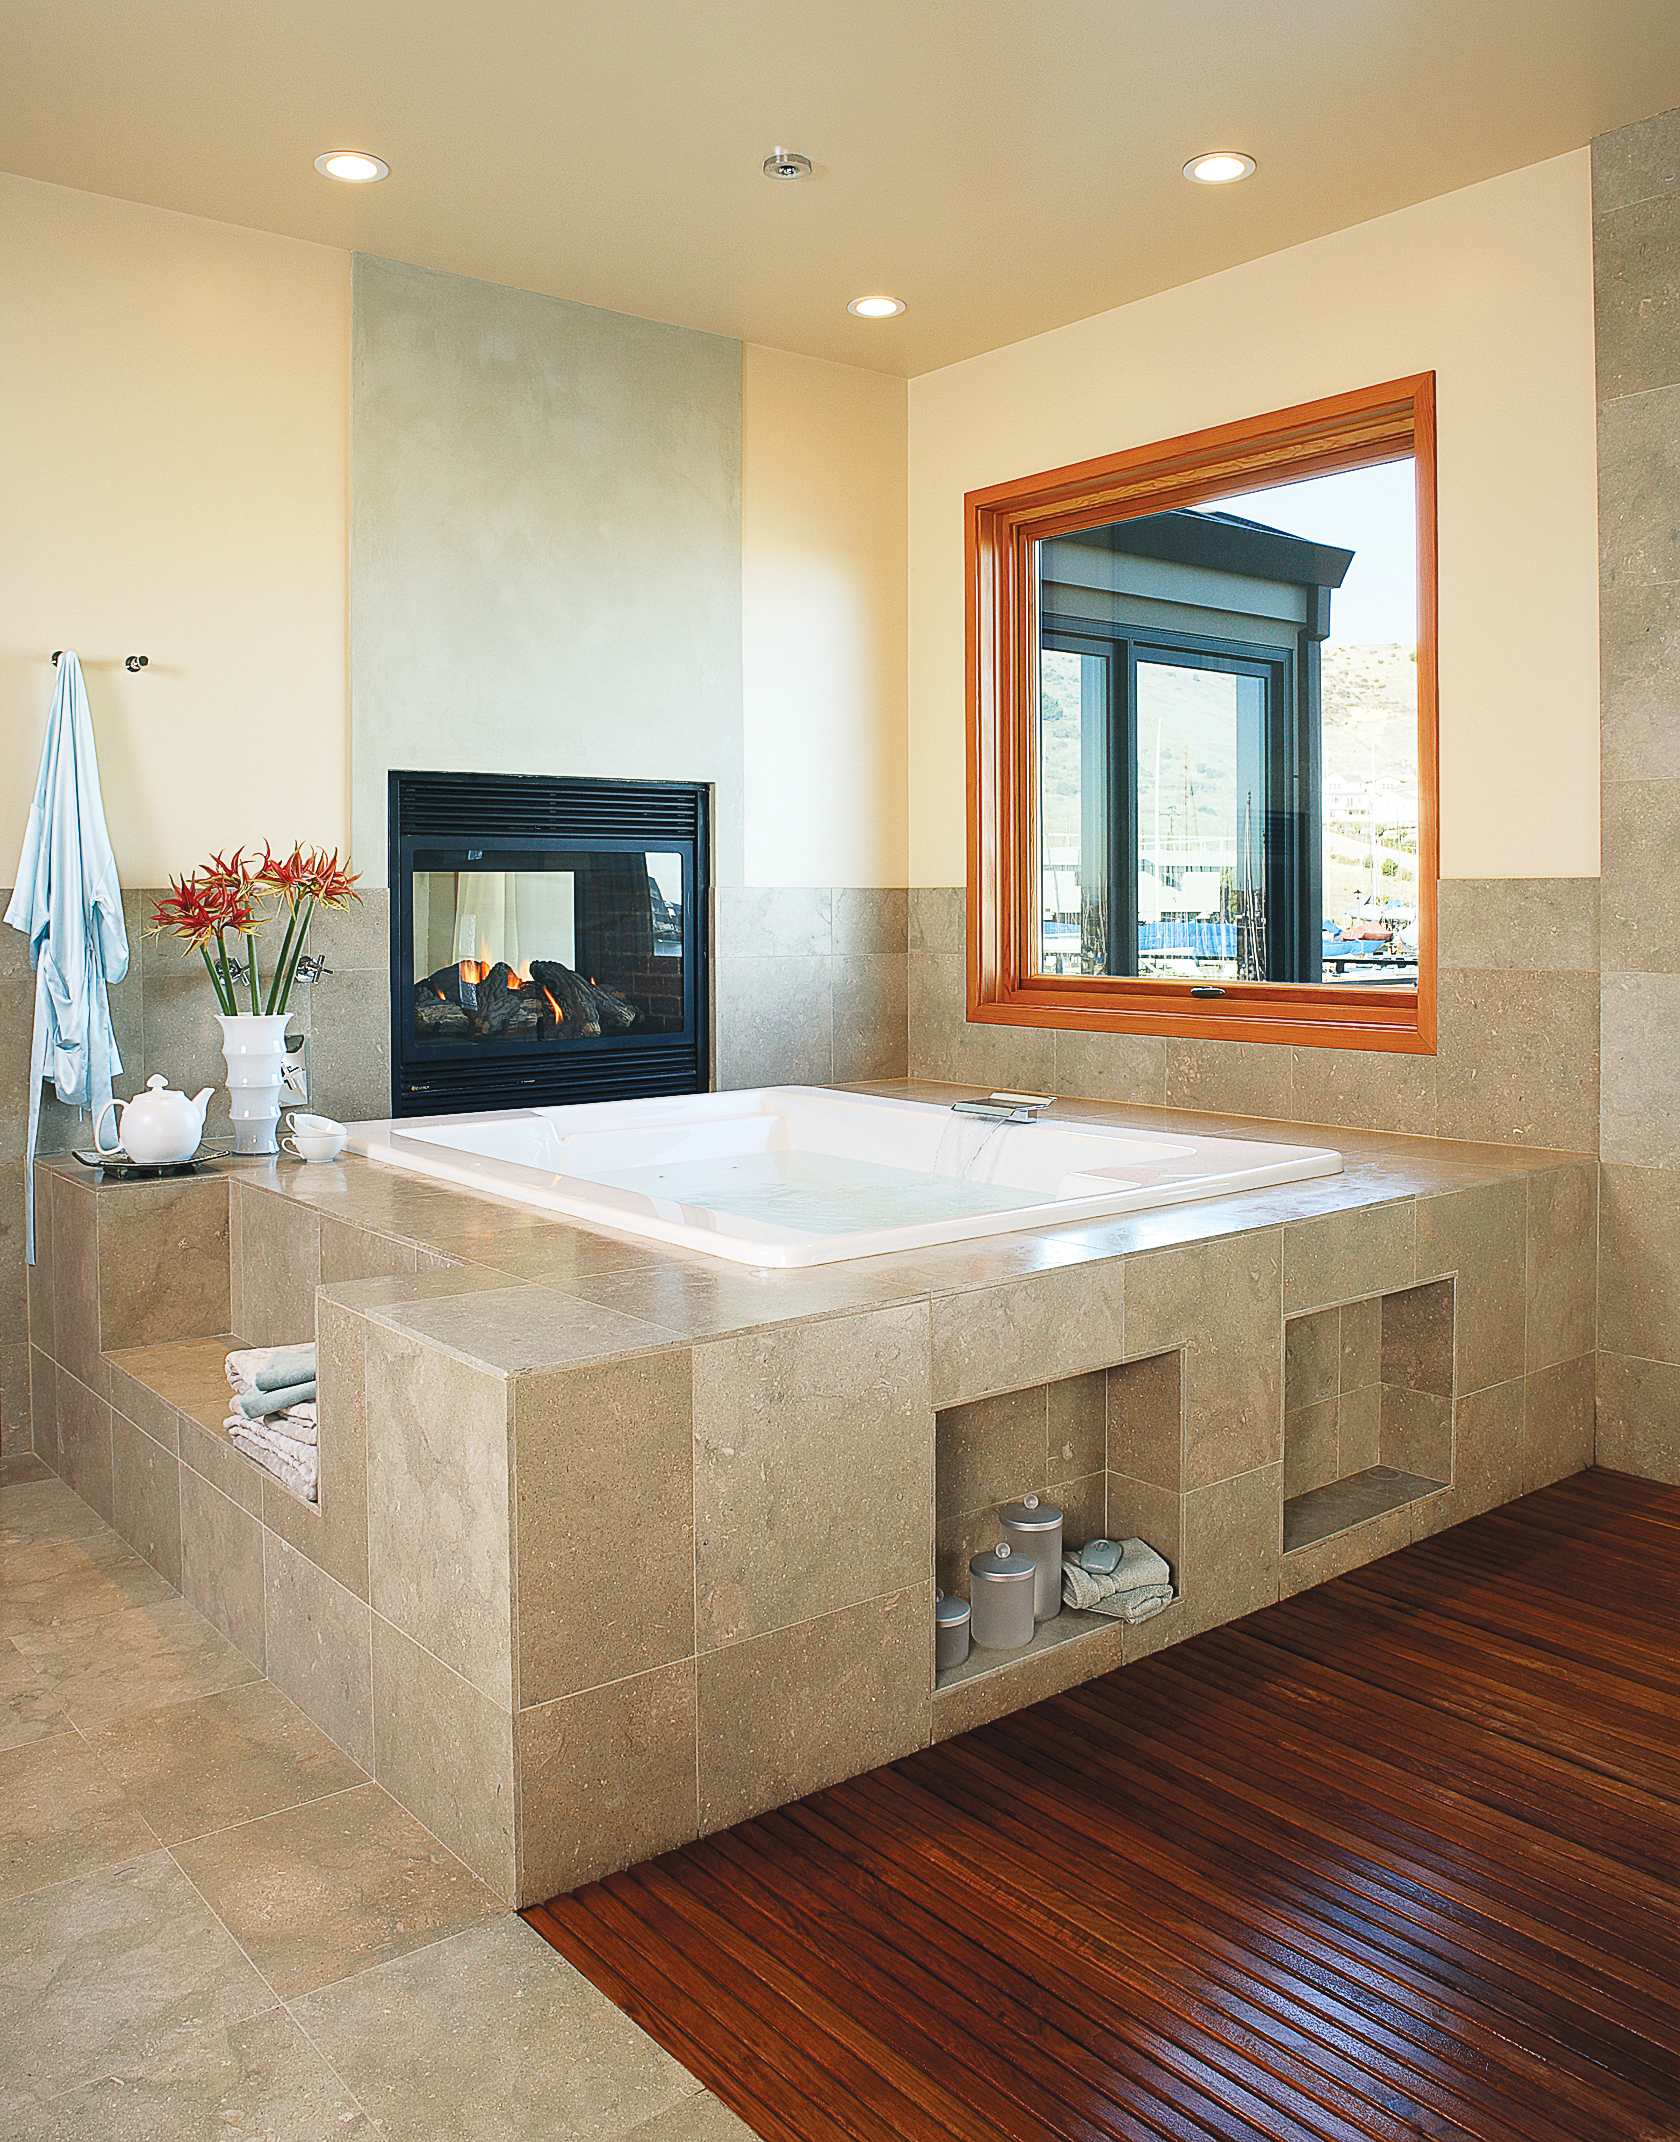 bathroom designs pictures. Deck-mounted Jetted Tub With Fireplace Bathroom Designs Pictures